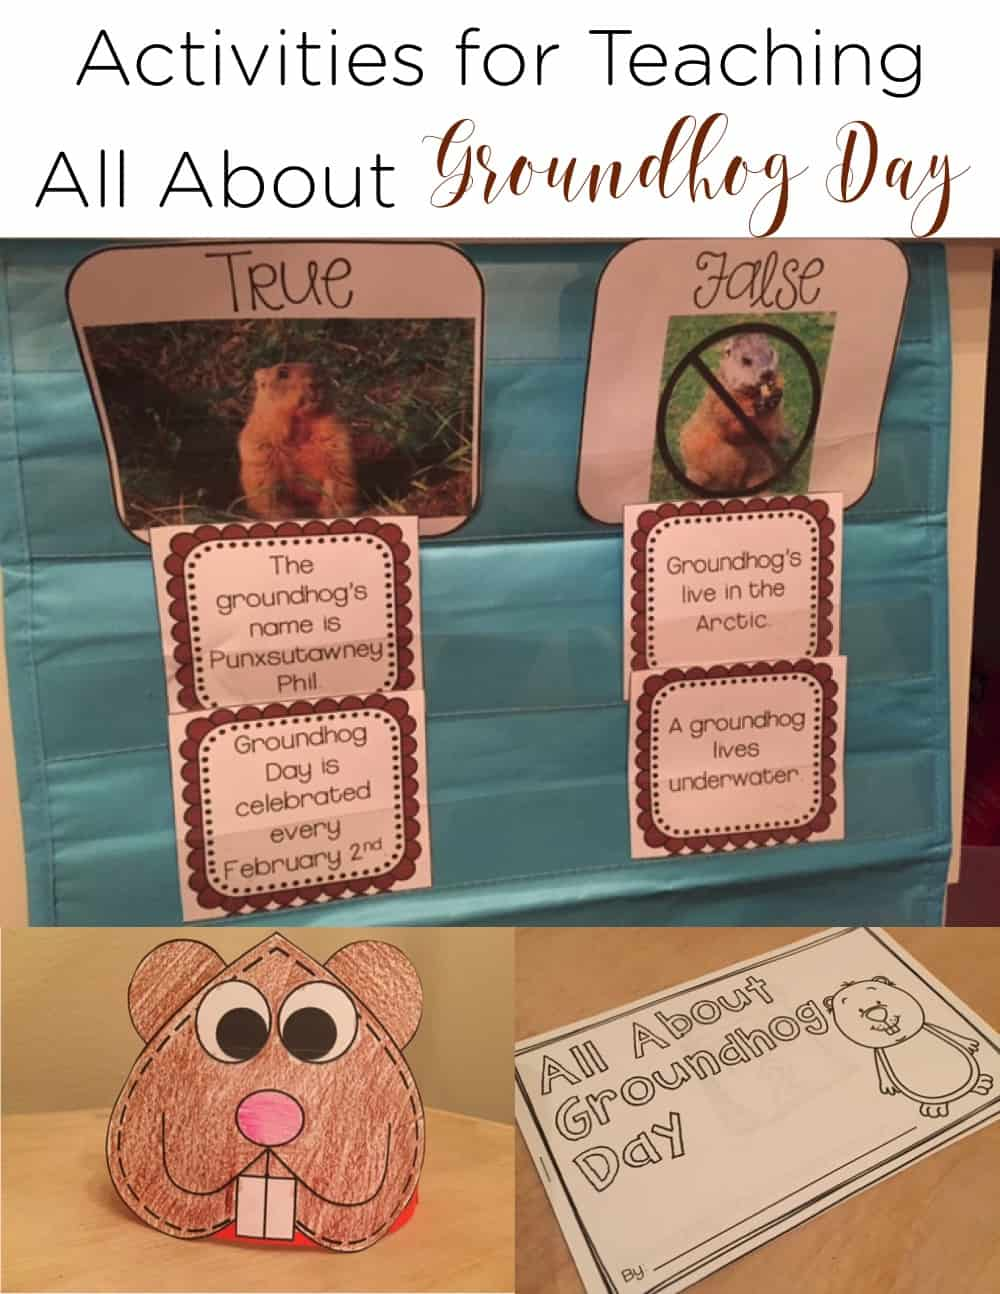 Groundhog Day is an exciting time for little learners! Teach them about why we celebrate this day, what a groundhog is, and the history behind the holiday!